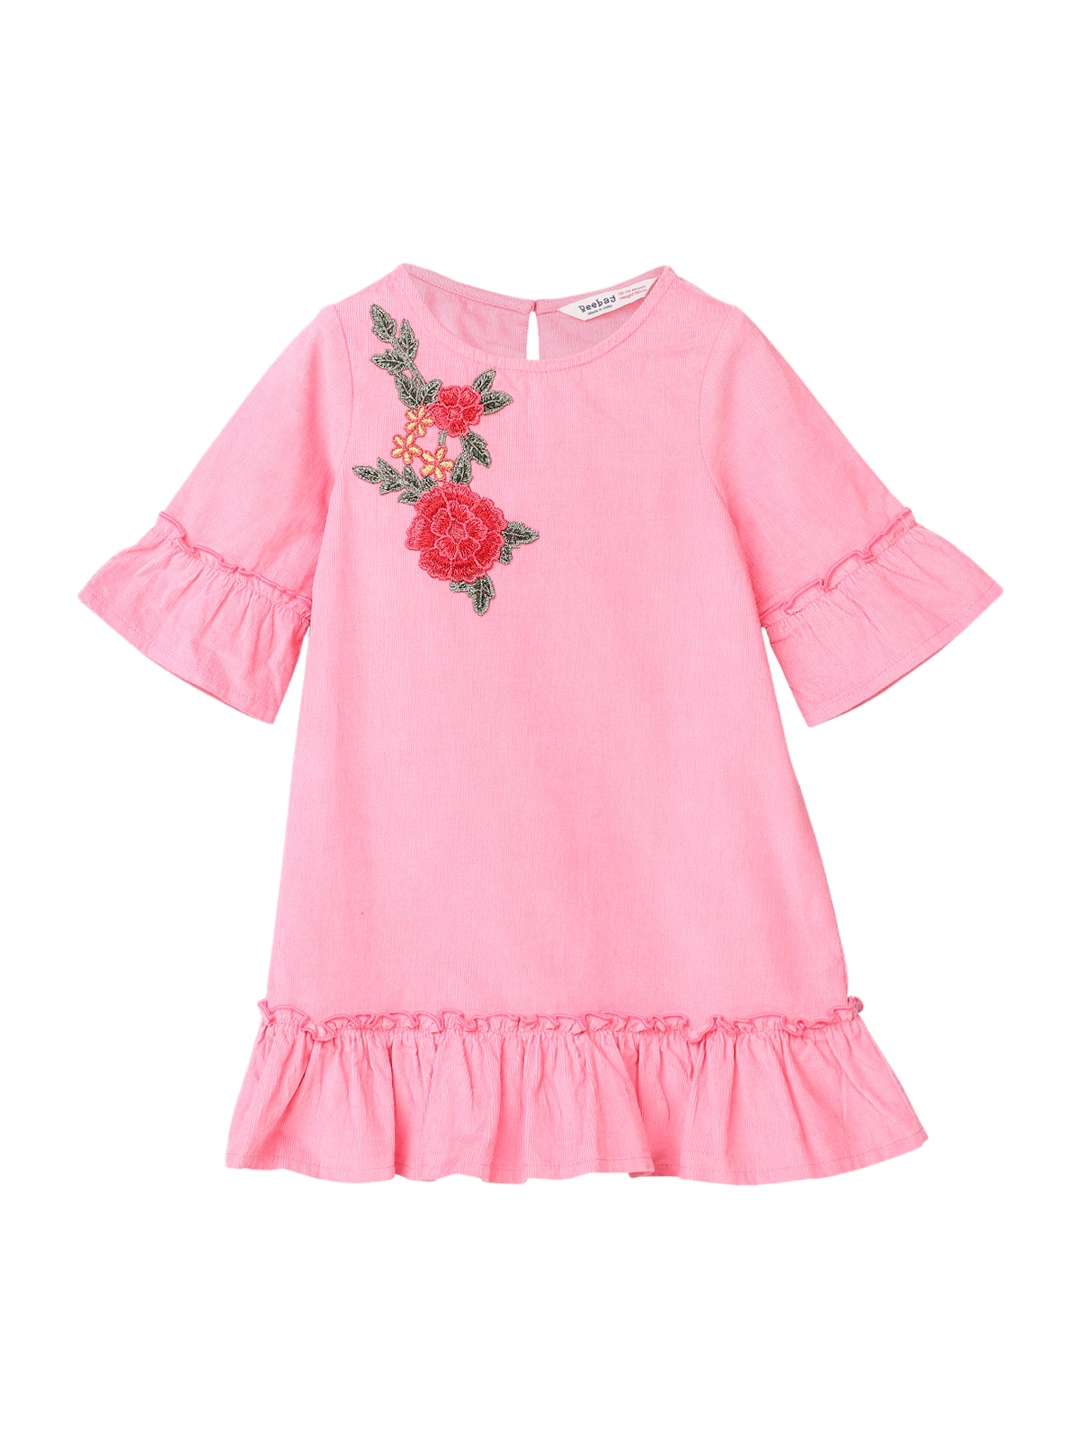 My Junior Miyo Ebay Beebay Girls Pink Self Design Drop Waist Dress